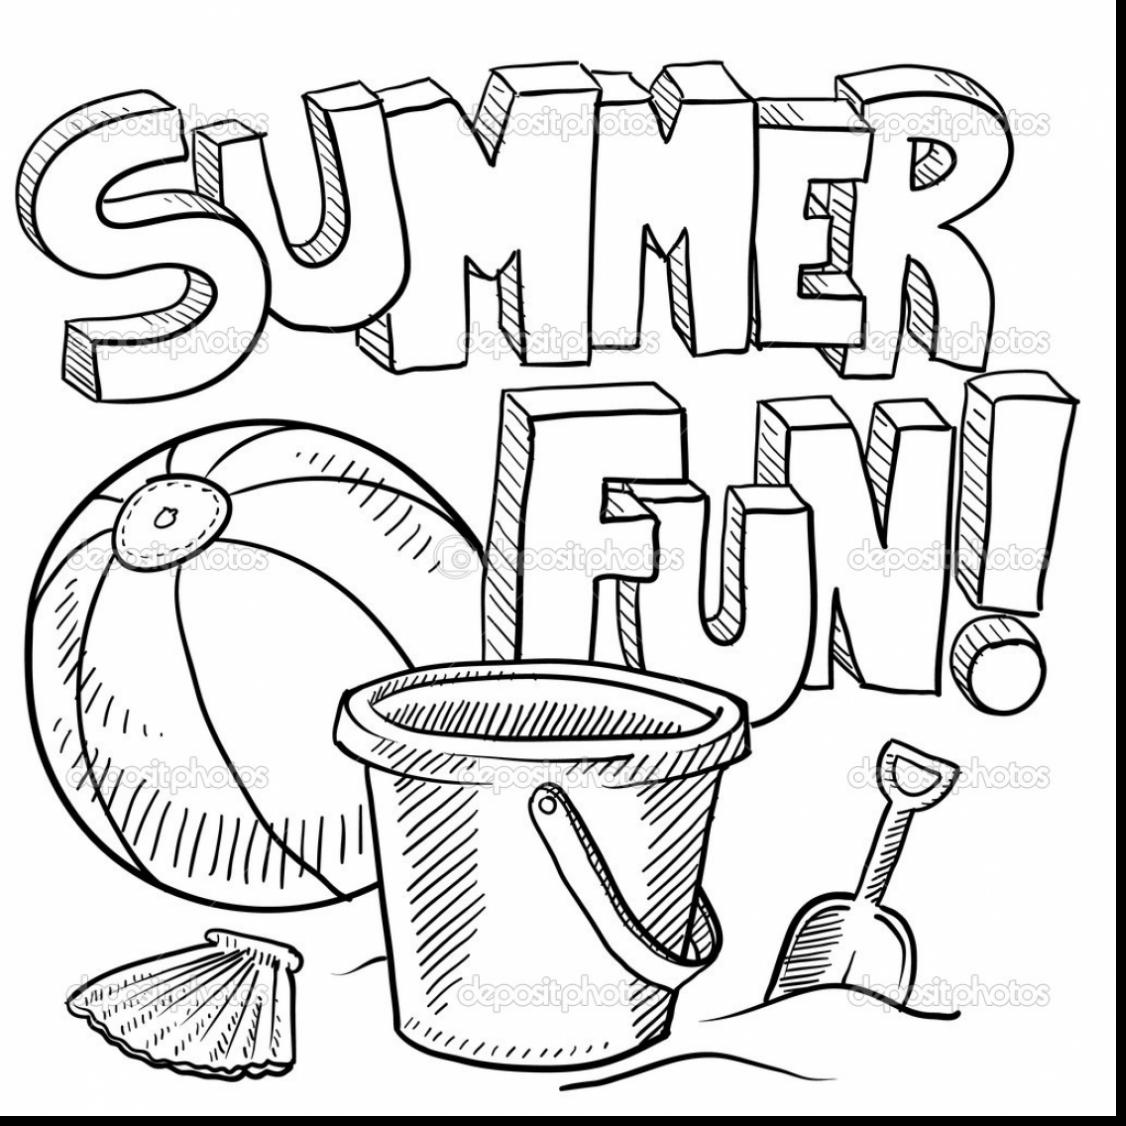 The Best Free Summertime Coloring Page Images Download From 119